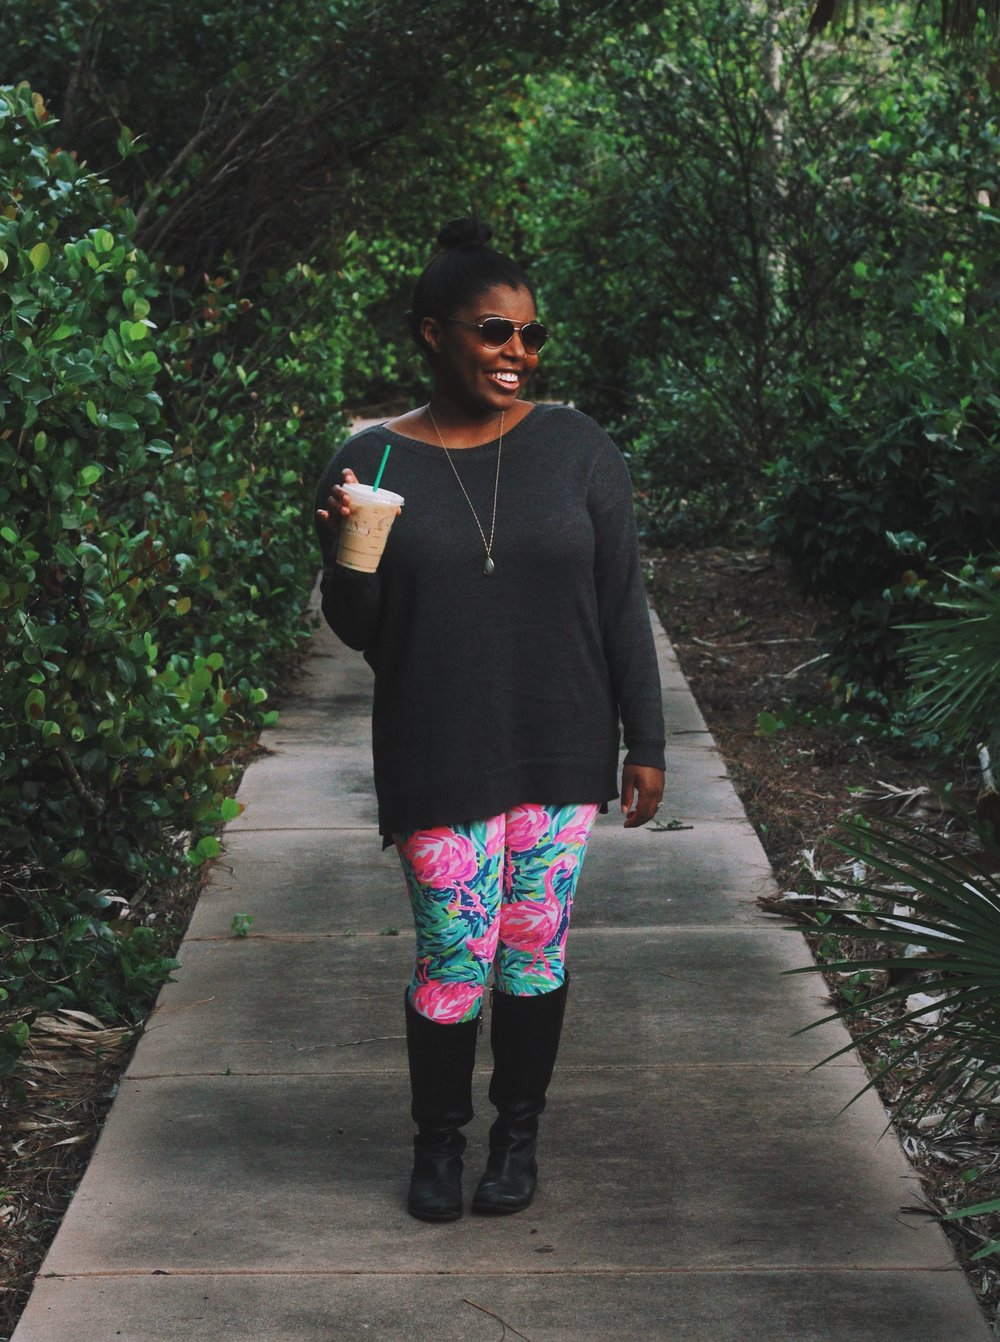 2a765f7fc807c I have friends half my size who say these leggings are too tight or  stretched, so I have no idea how I pulled it off. They're like the jeans  from the ...